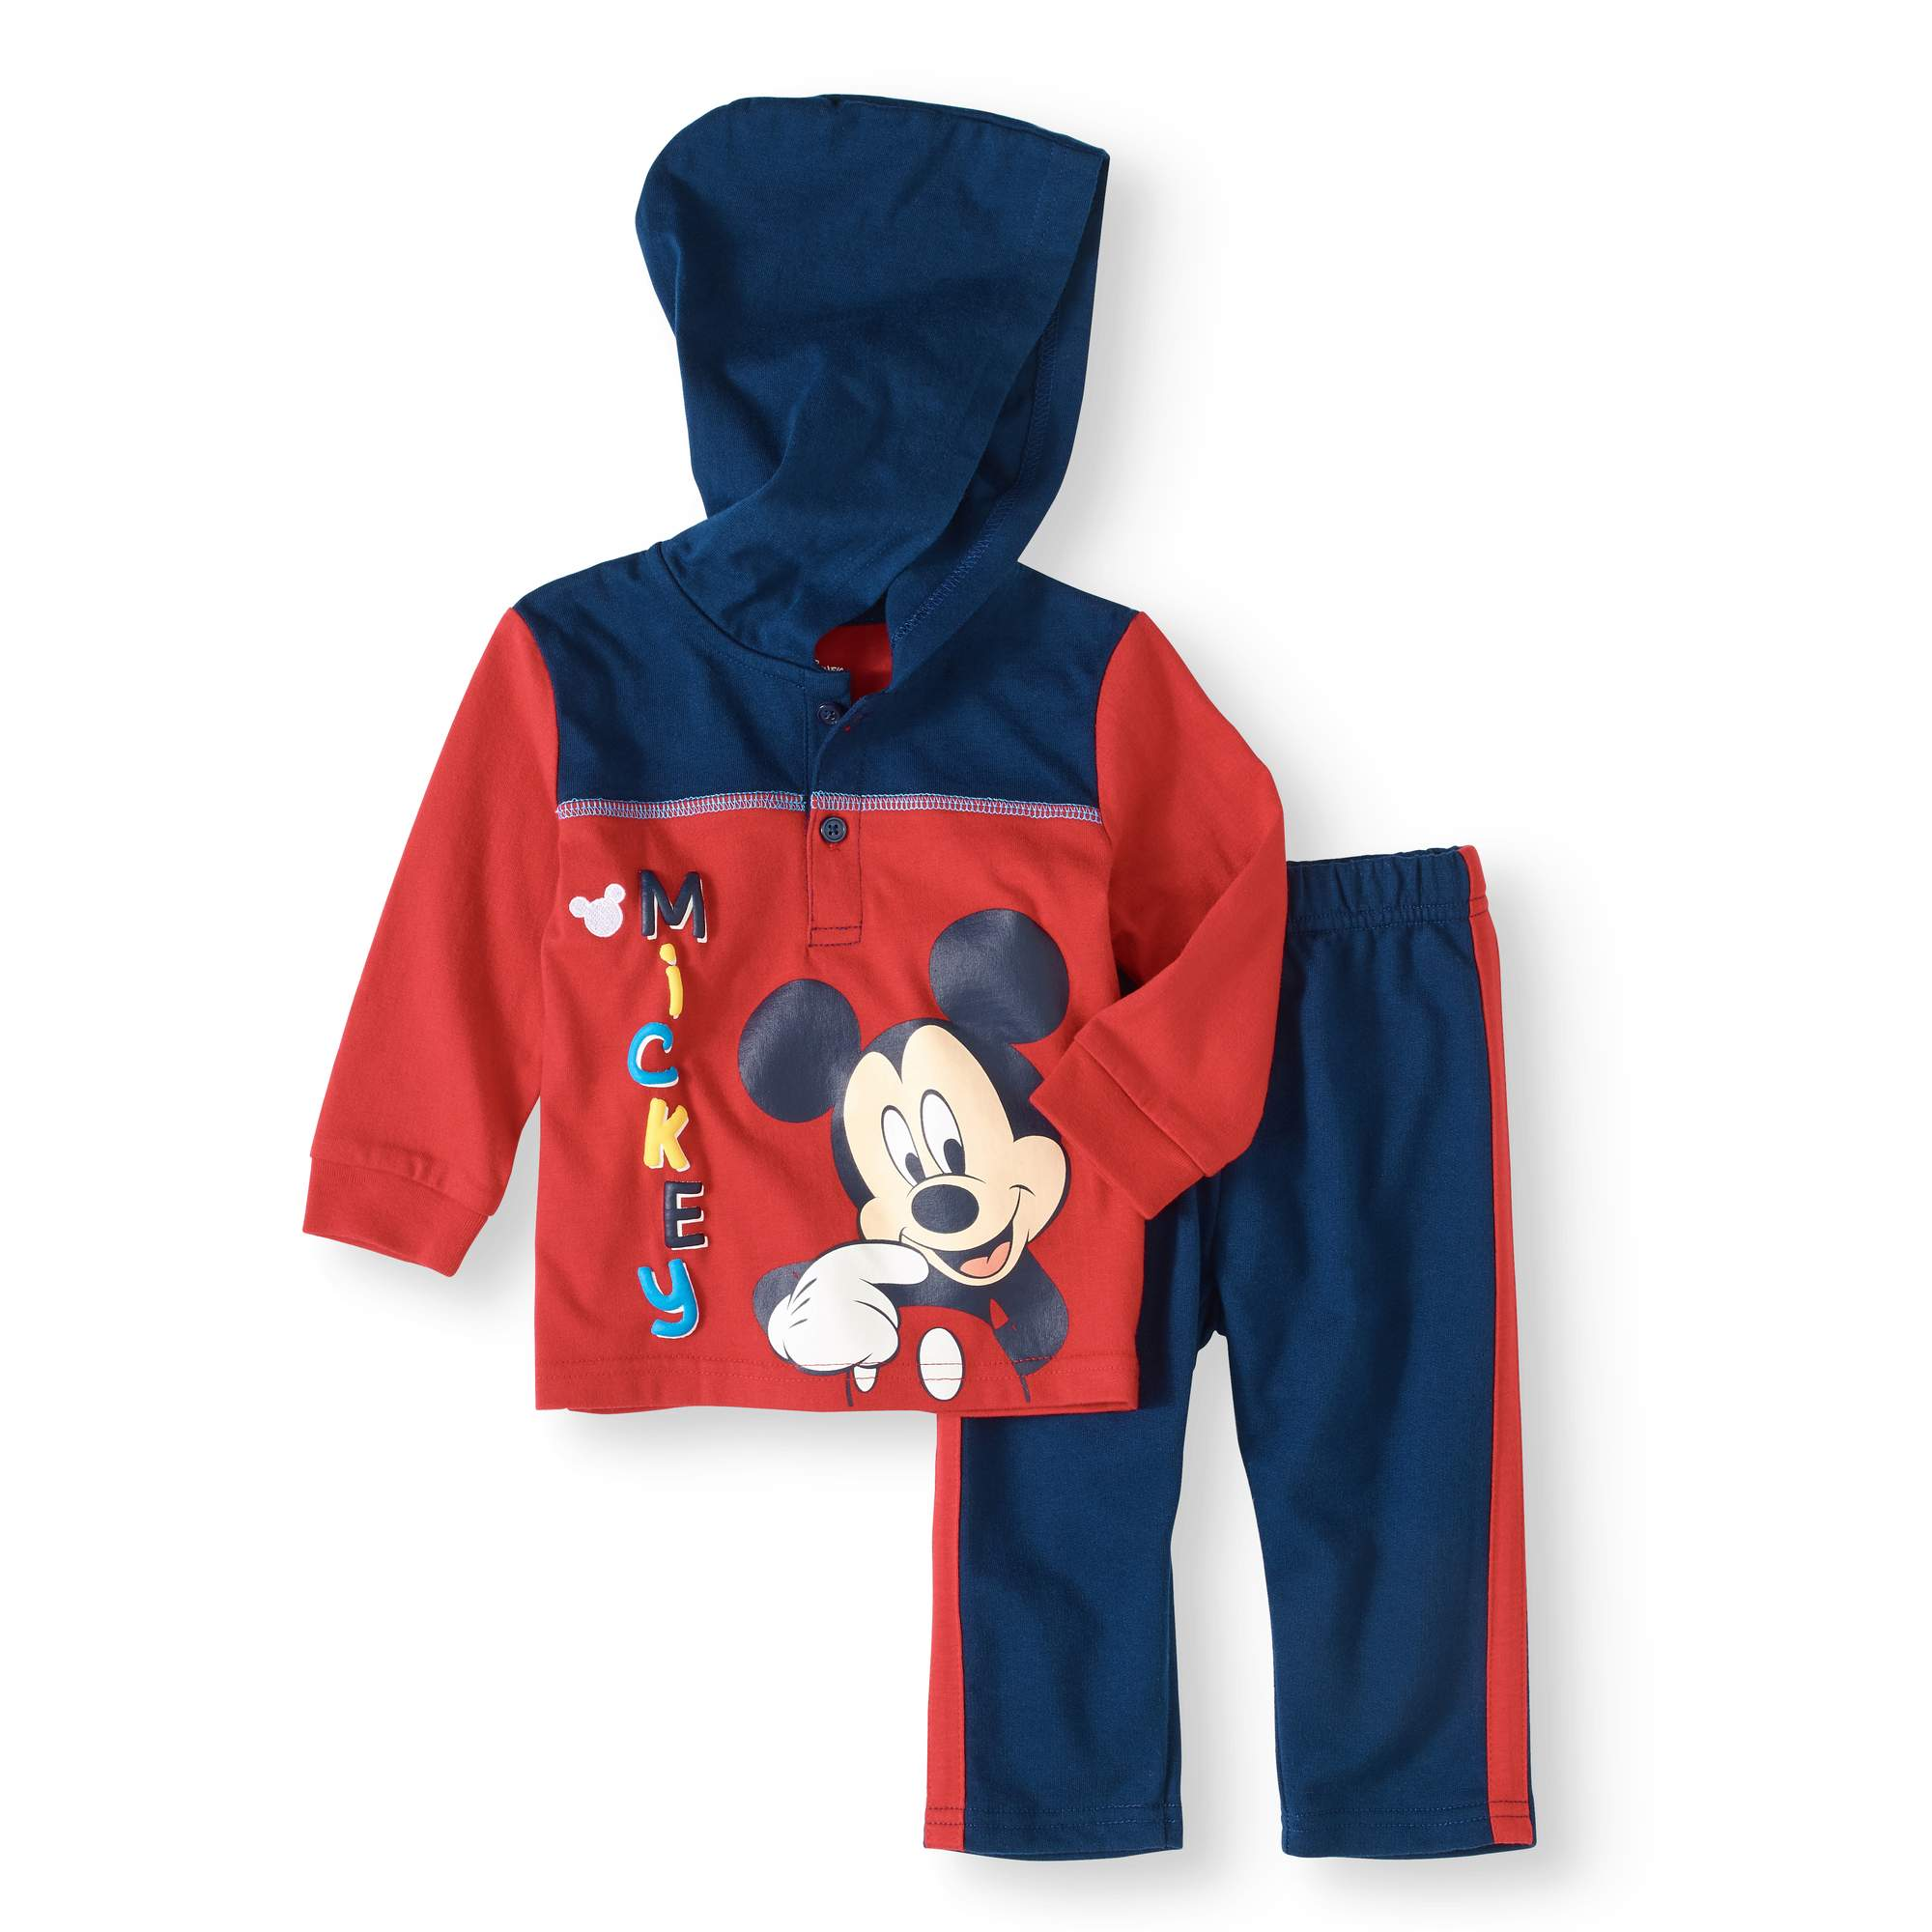 Newborn Baby Boy Hoodie and Pants 2-Piece Outfit Set